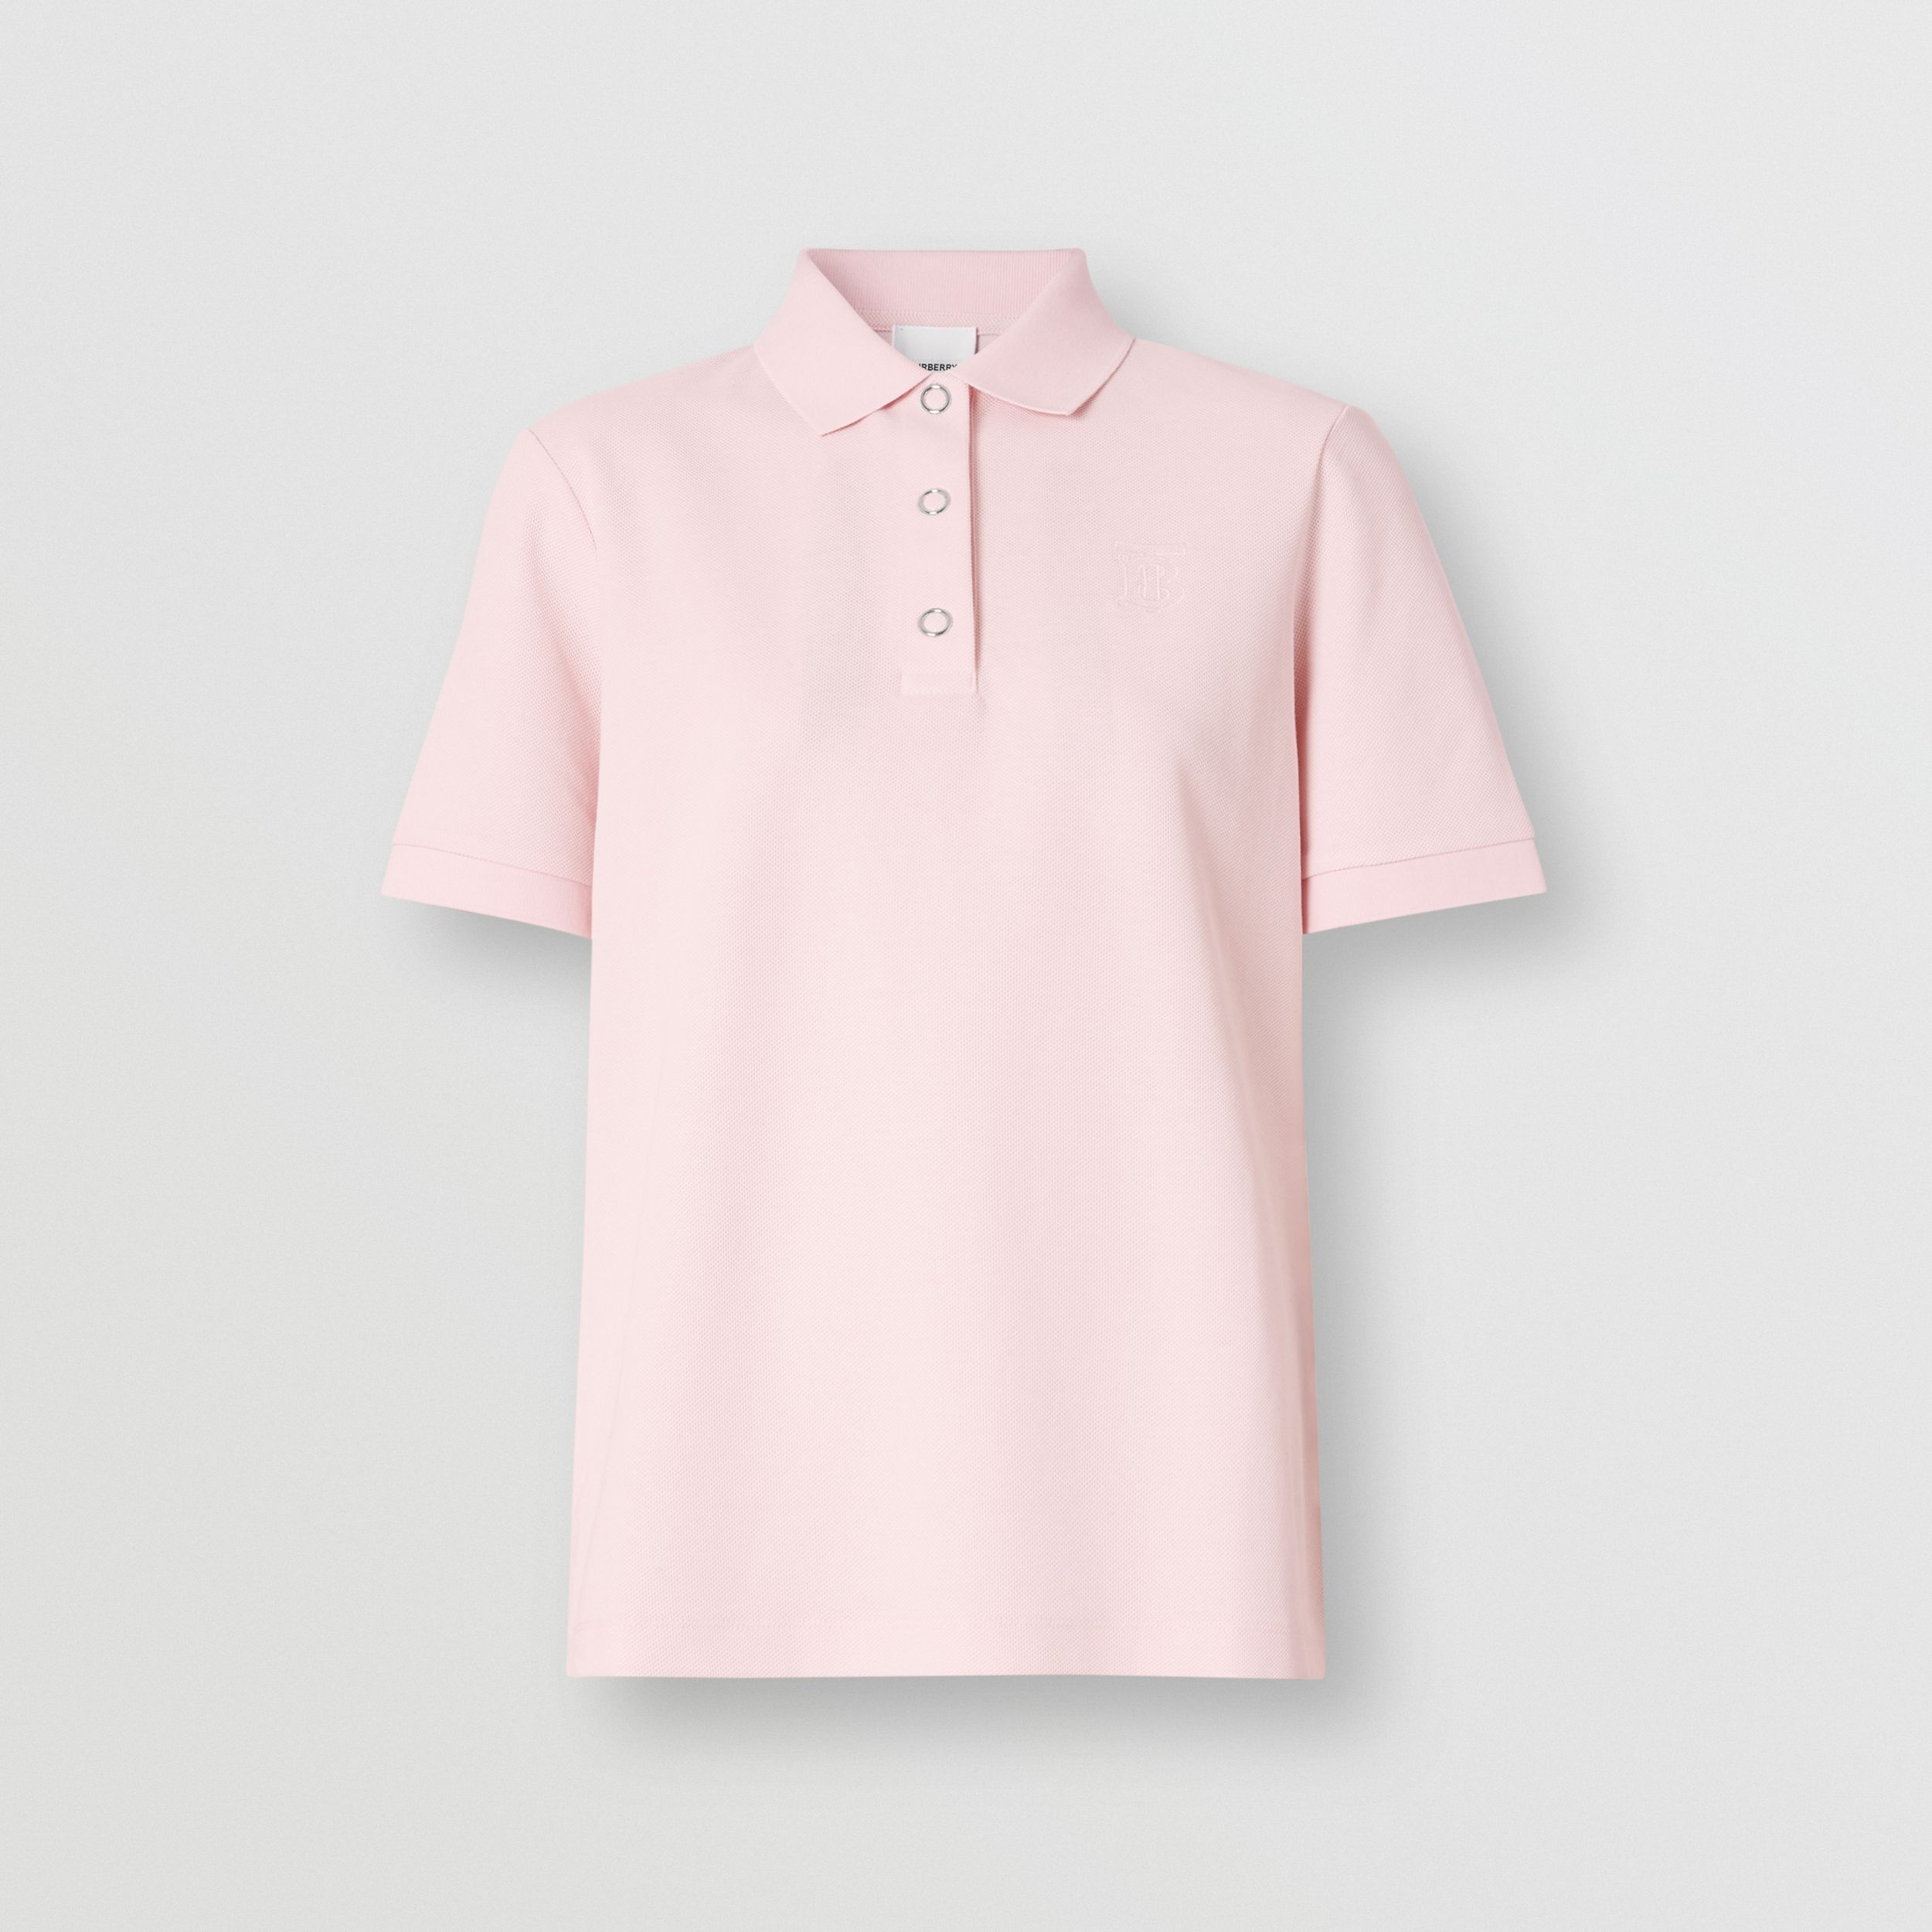 Monogram Motif Cotton Piqué Polo Shirt in Alabaster Pink - Women | Burberry - 4